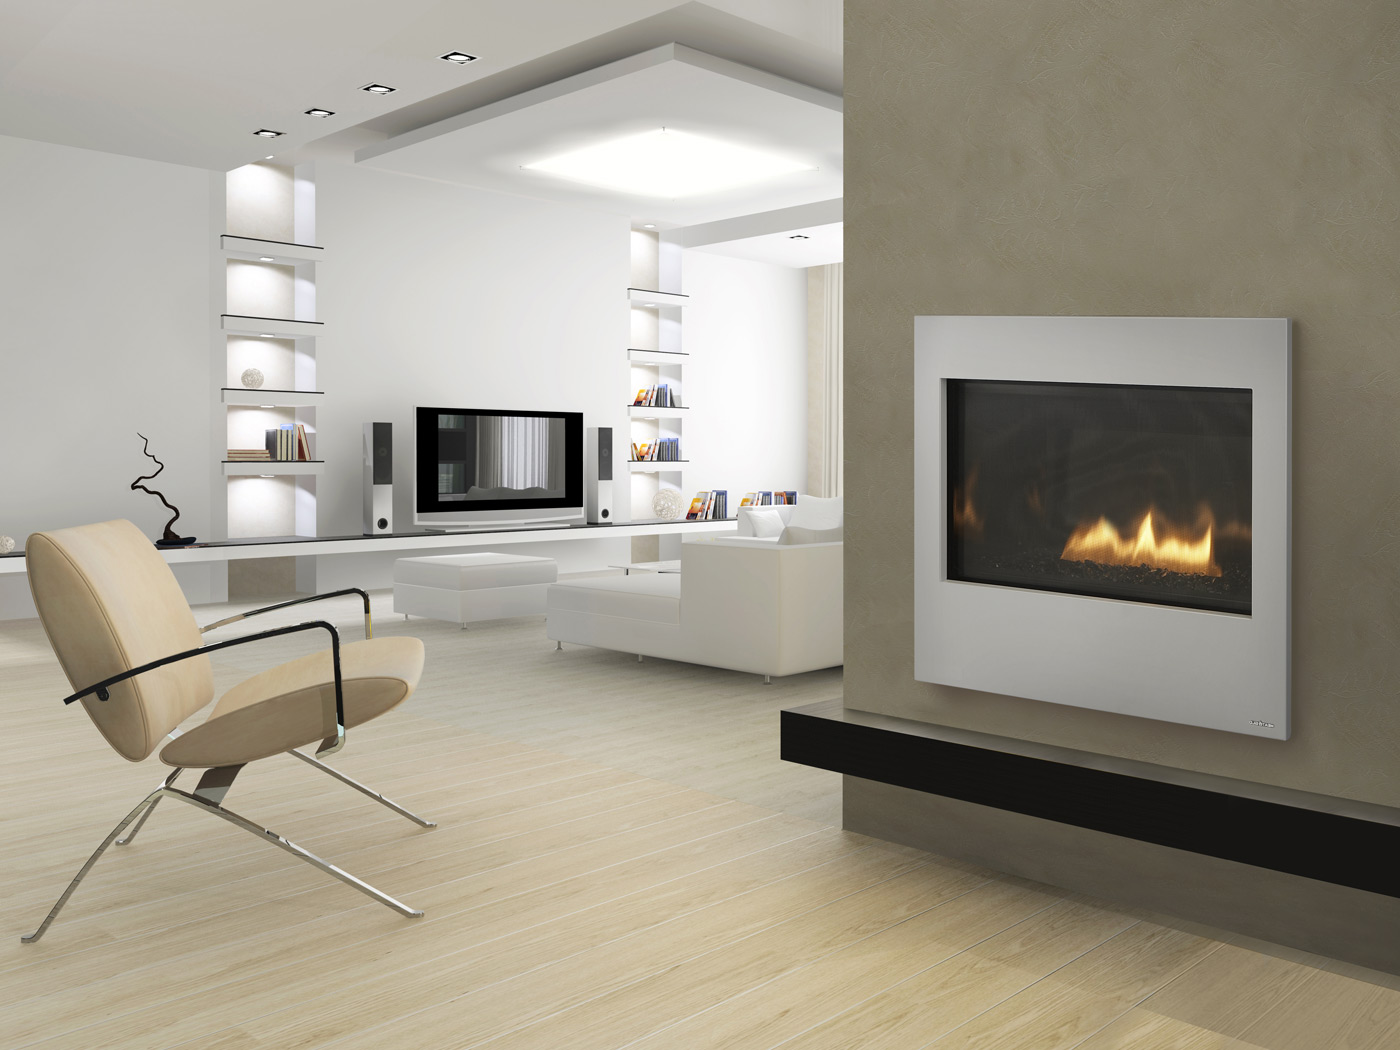 Fireplaces gas fireplace luxury lifestyle design Fireplace design ideas